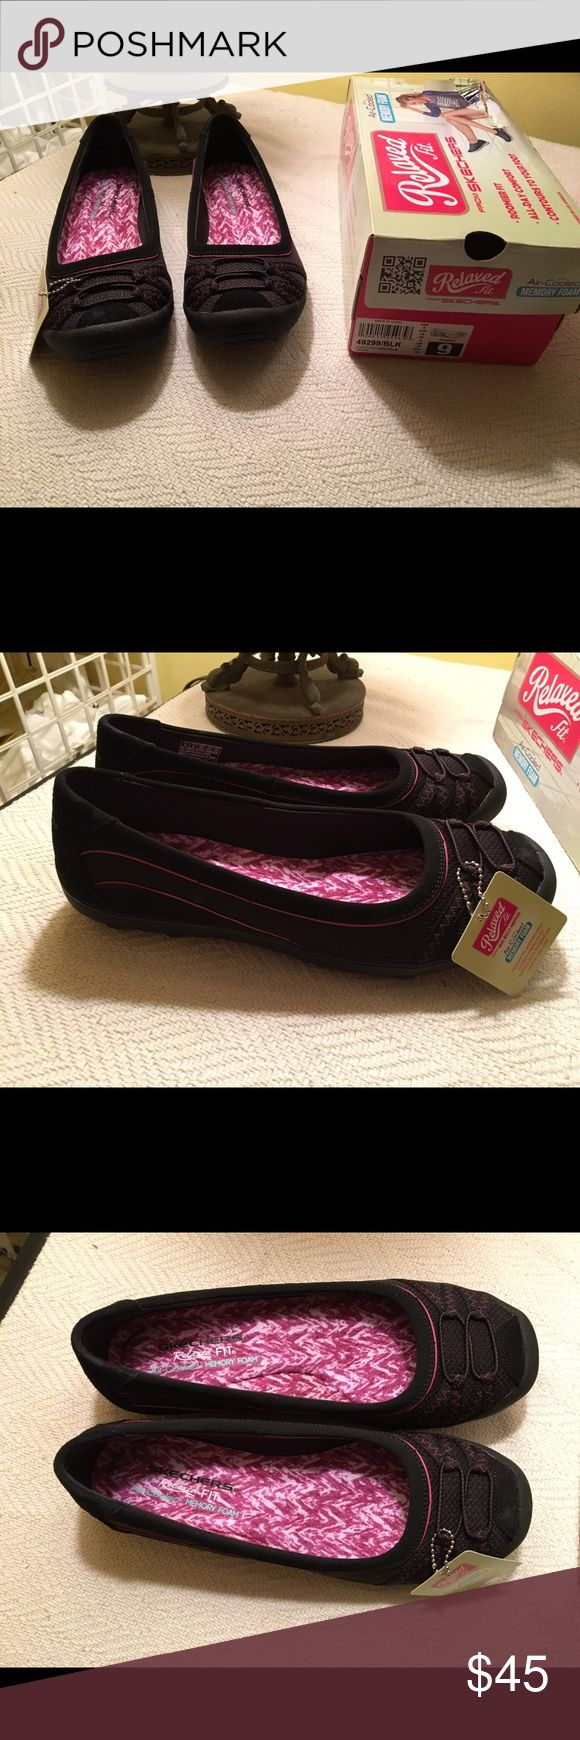 NWT Skechers Size 9. New with tags. I bought these online and unfortunately they're too big. Never worn just tried on. Skechers Shoes